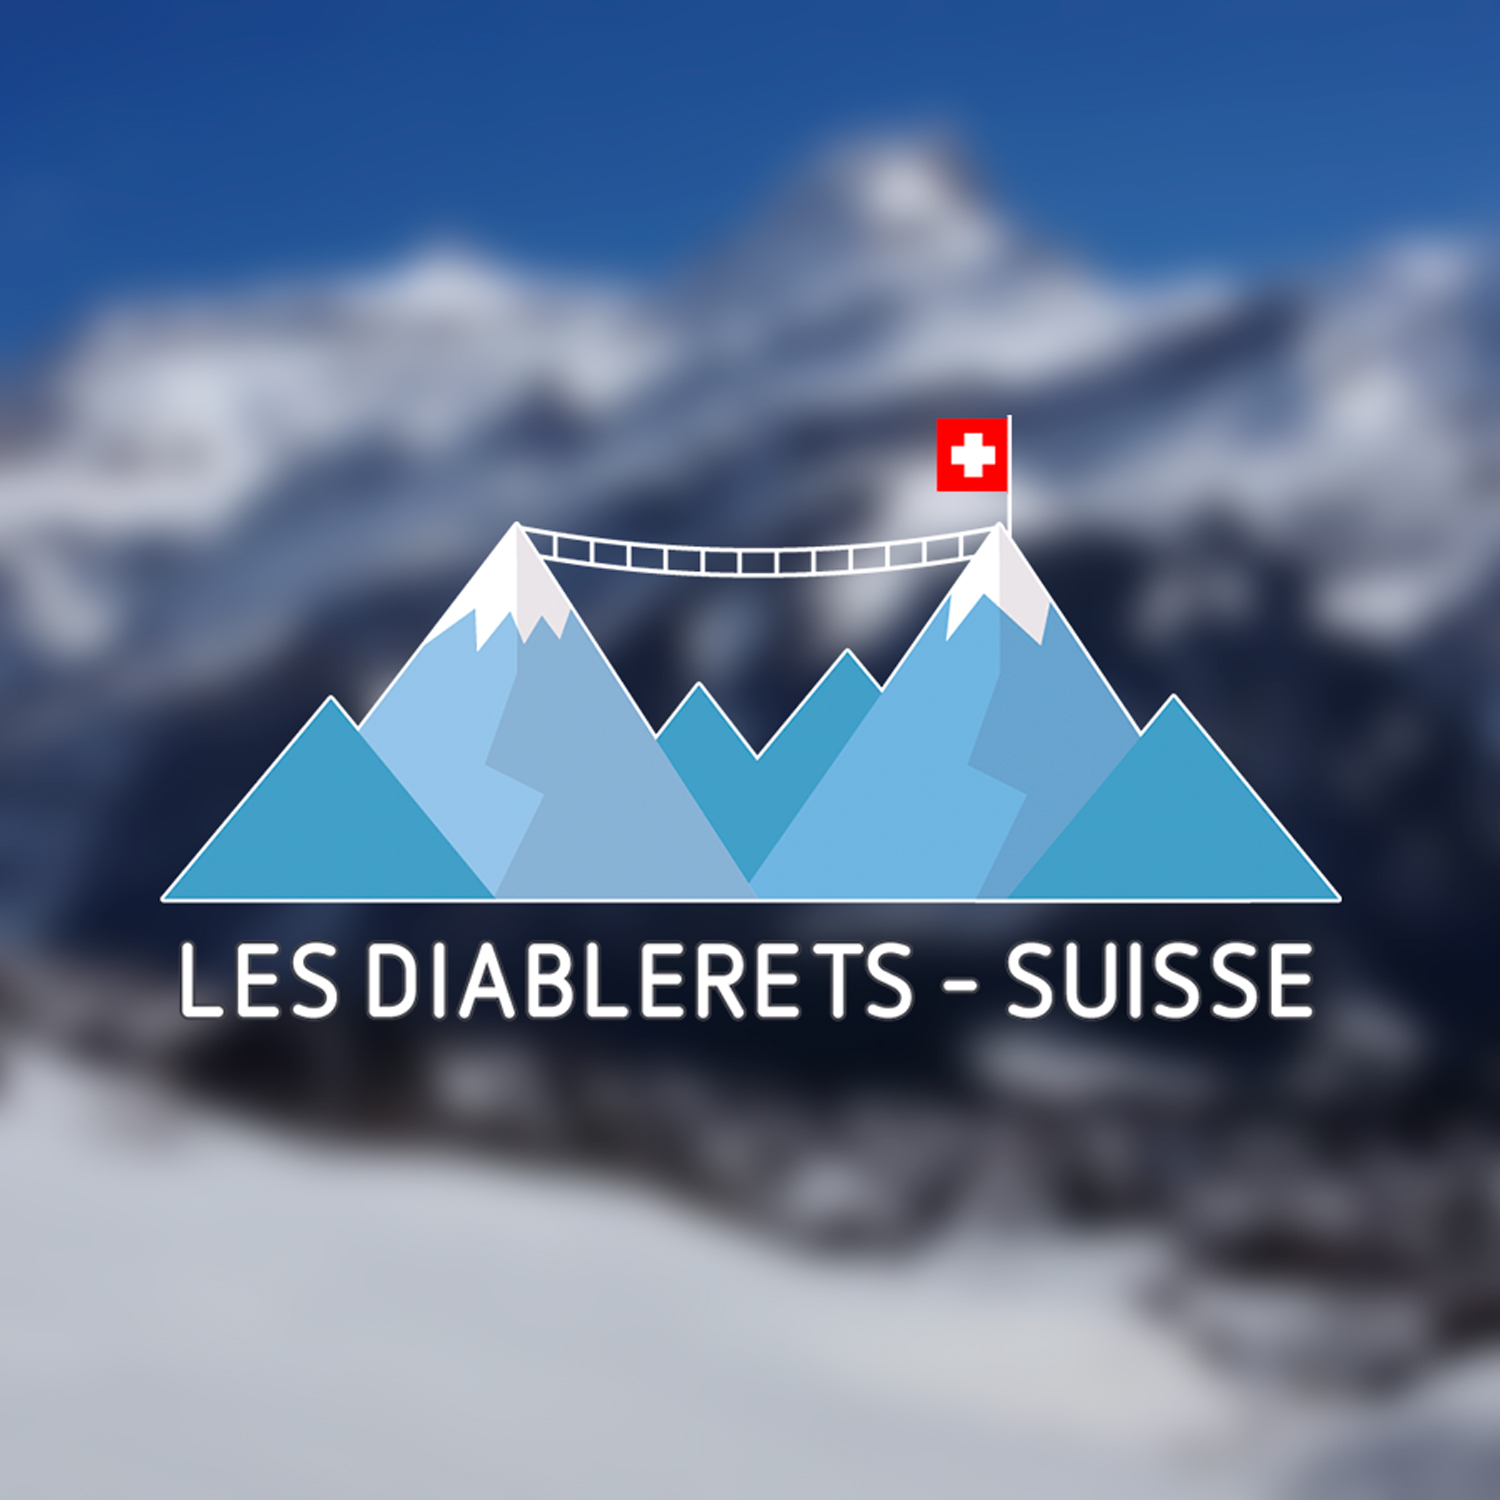 Geofilter Snapchat Les Diablerets